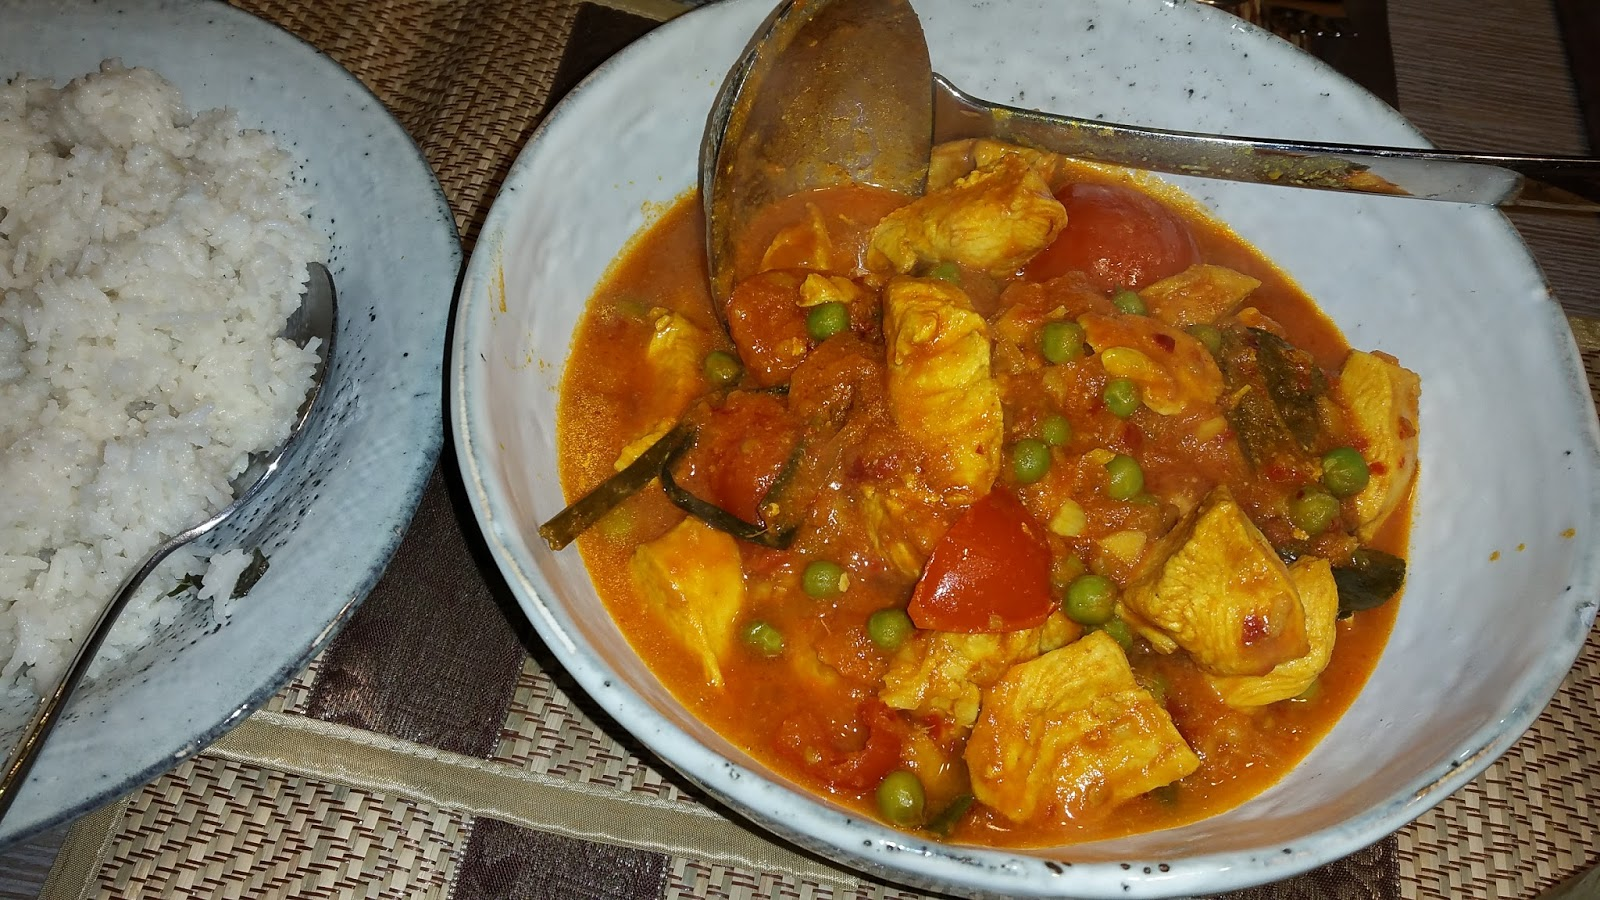 Kürbis Hähnchen Curry No Worry She Can Curry Nyonya Malayisches Tomaten Chili